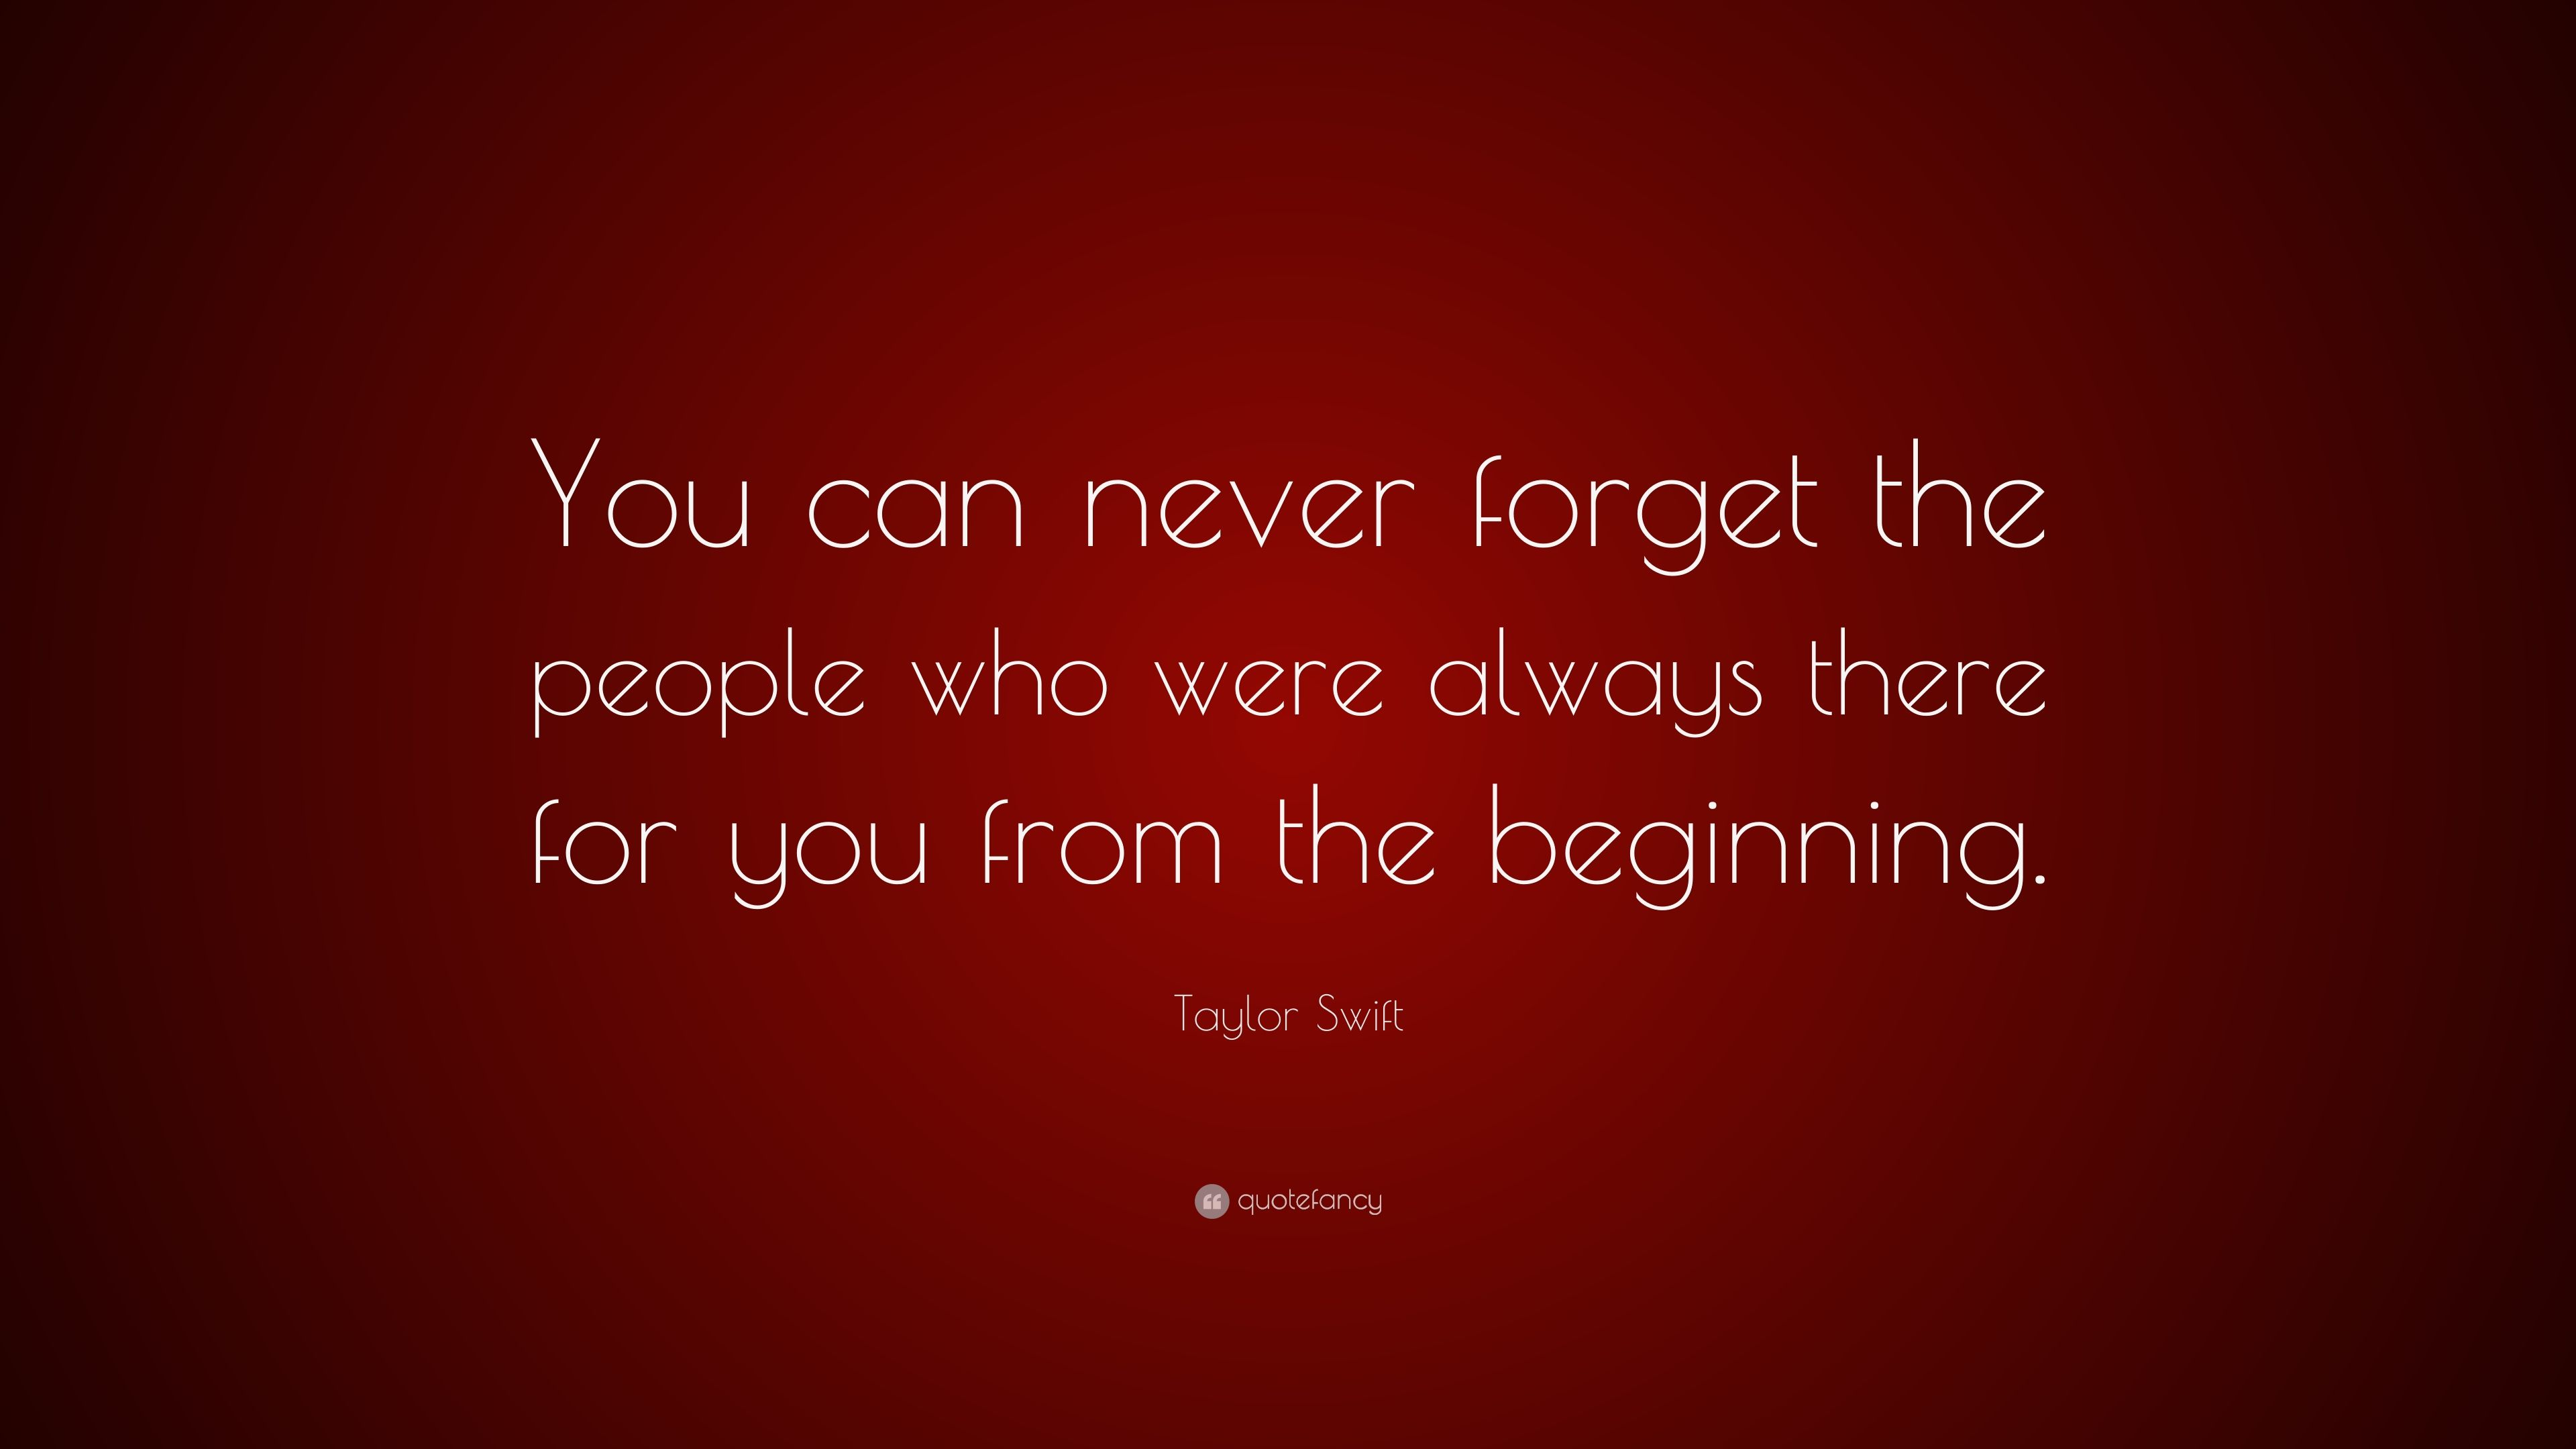 Taylor Swift Quote You Can Never Forget The People Who Were Always